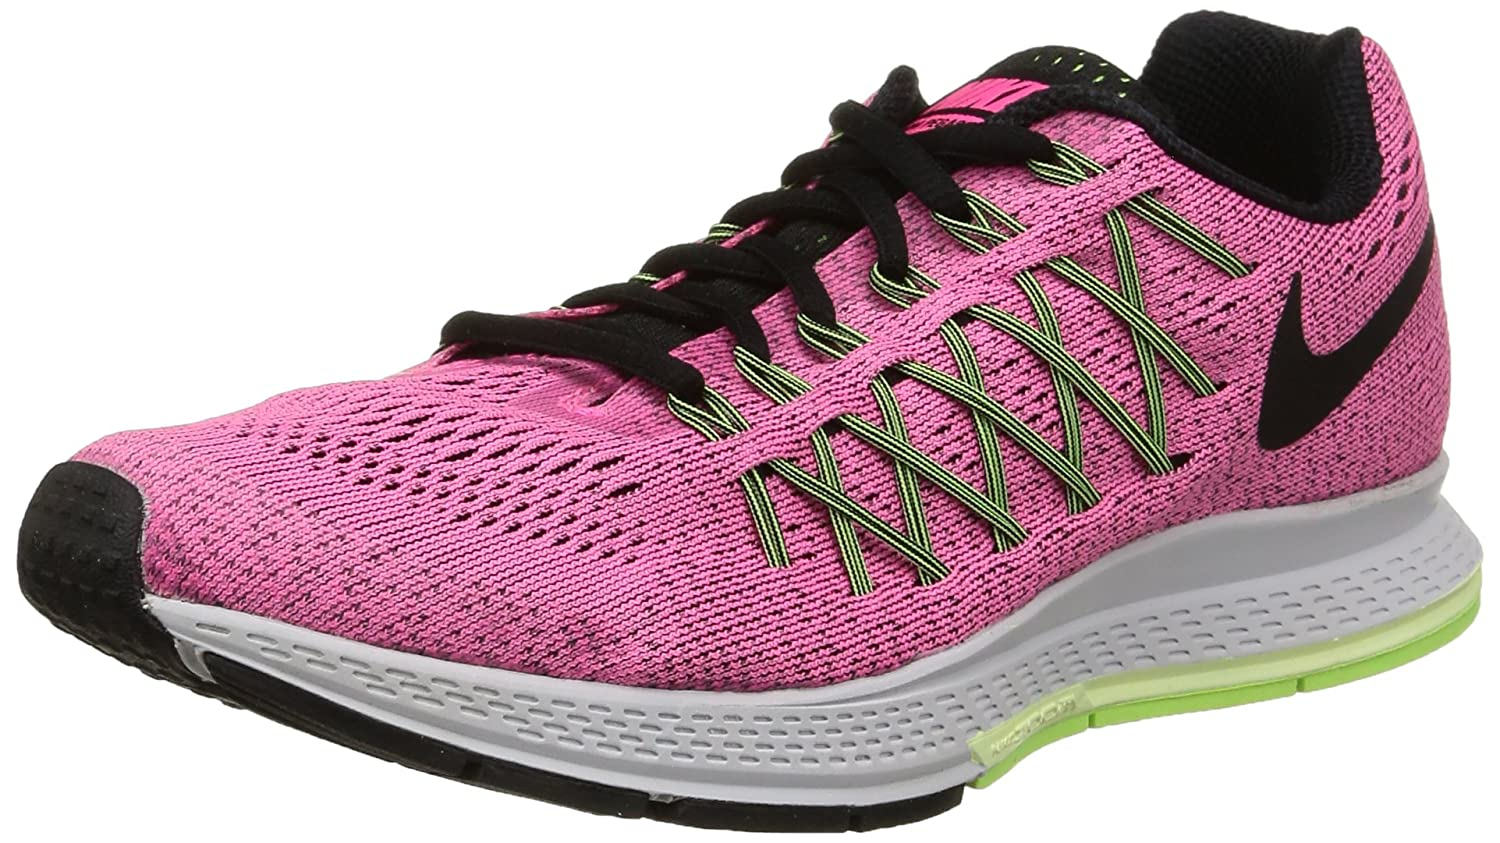 NIKE Women's Air Zoom Pegasus 32 Running Shoe B00QFP1OEA 10 B(M) US|Pink